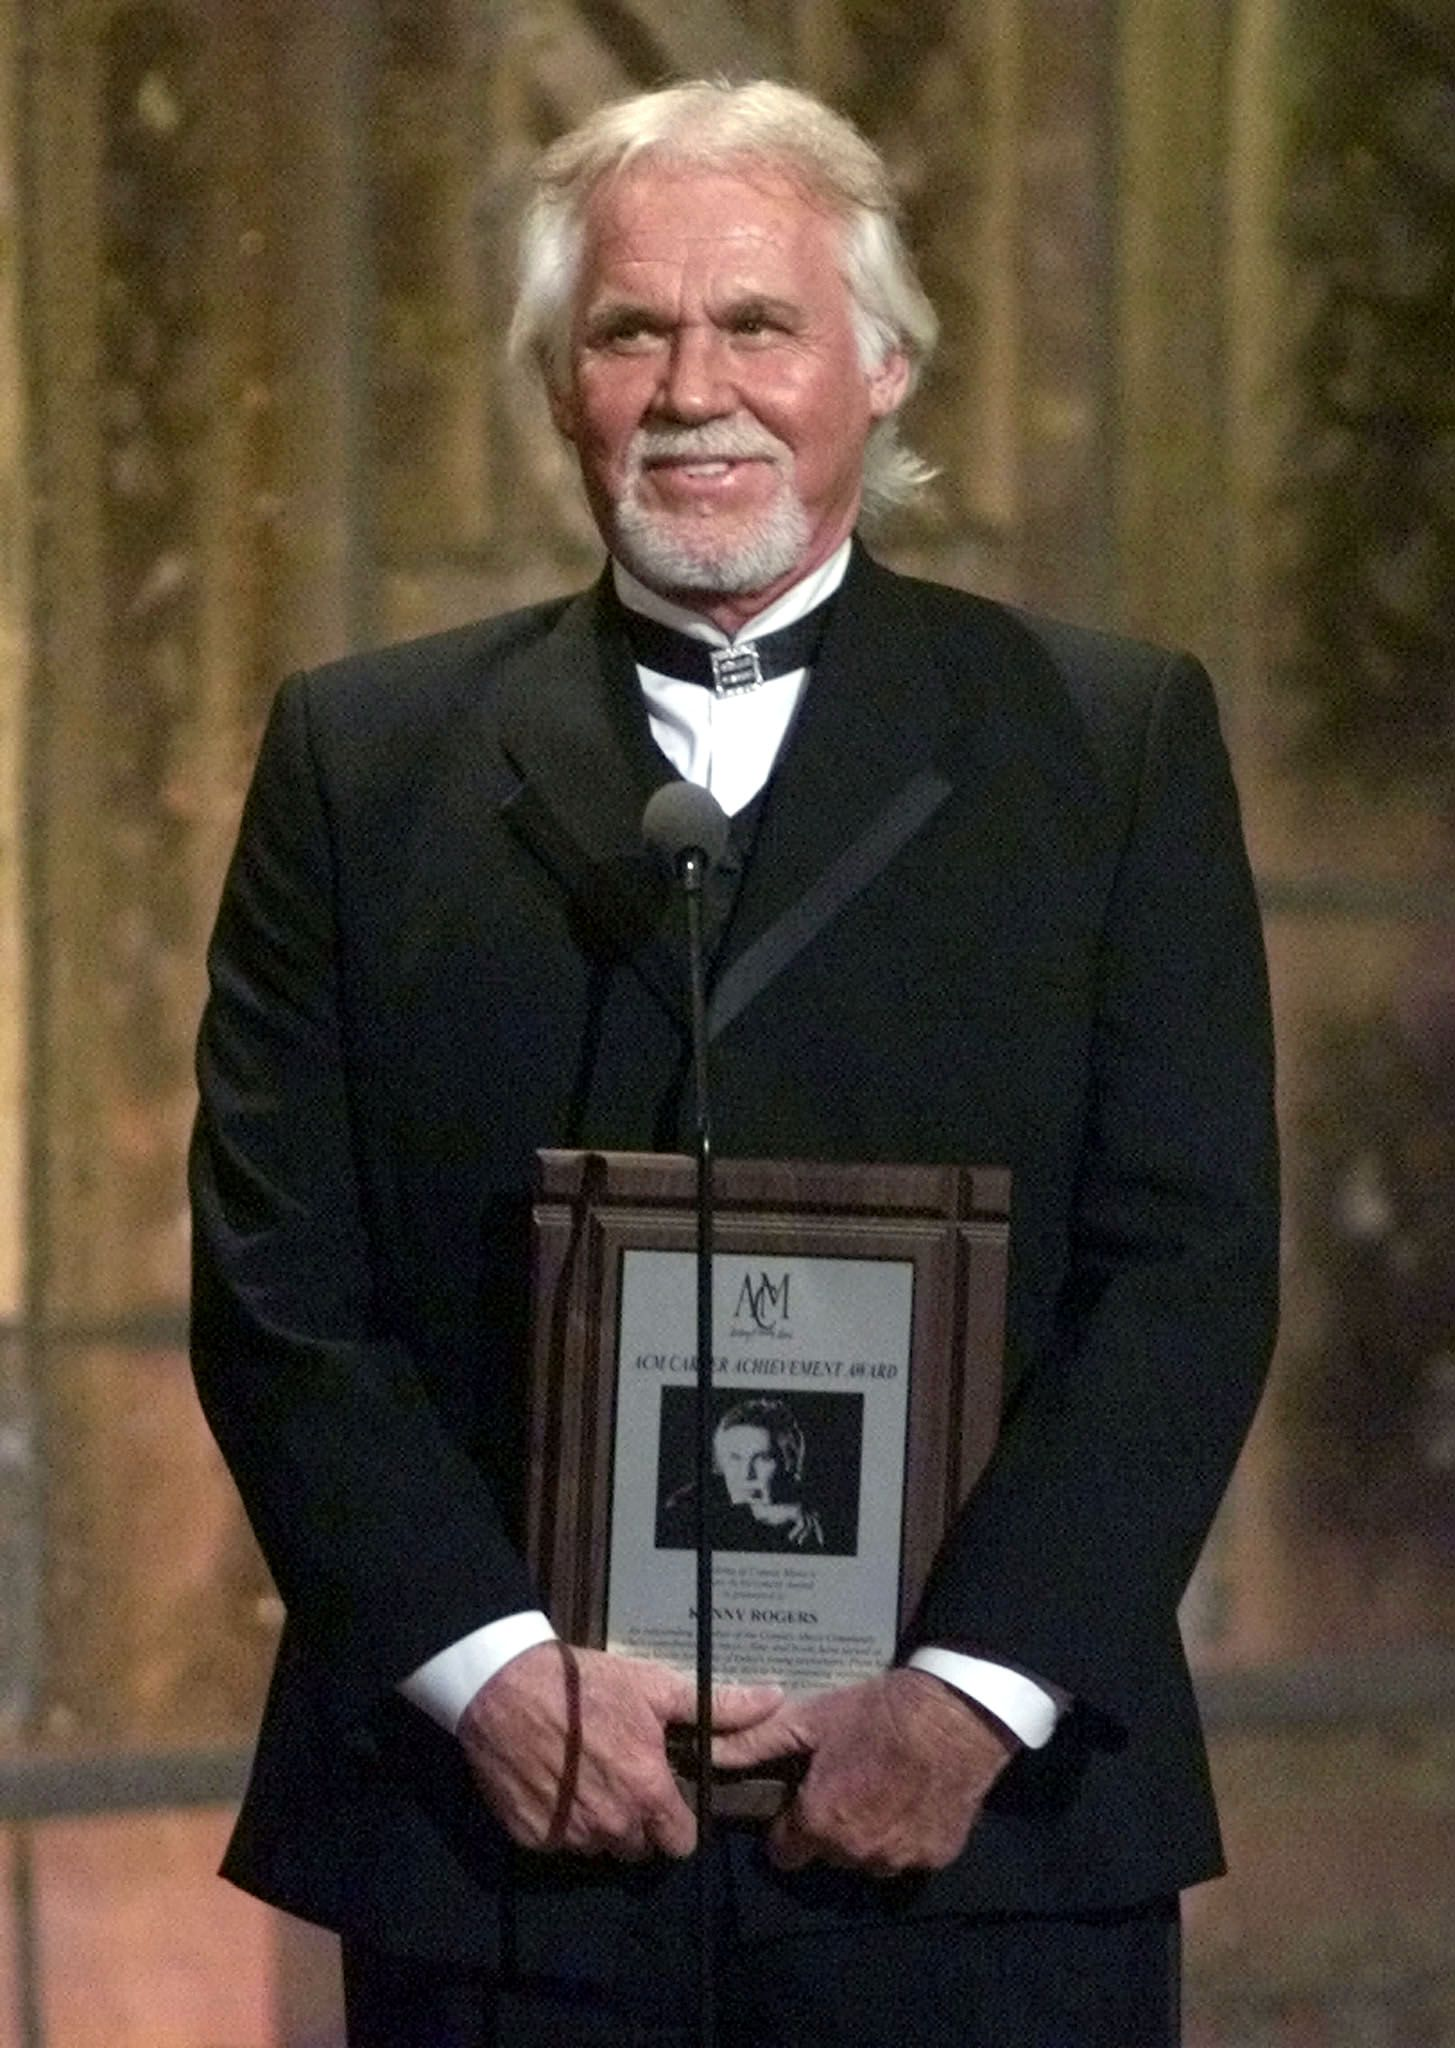 FILE PHOTO: Singer Kenny Rogers accepts a special Career Achievement Award at the 36th annual Academy of Country Music Awards in Los Angeles